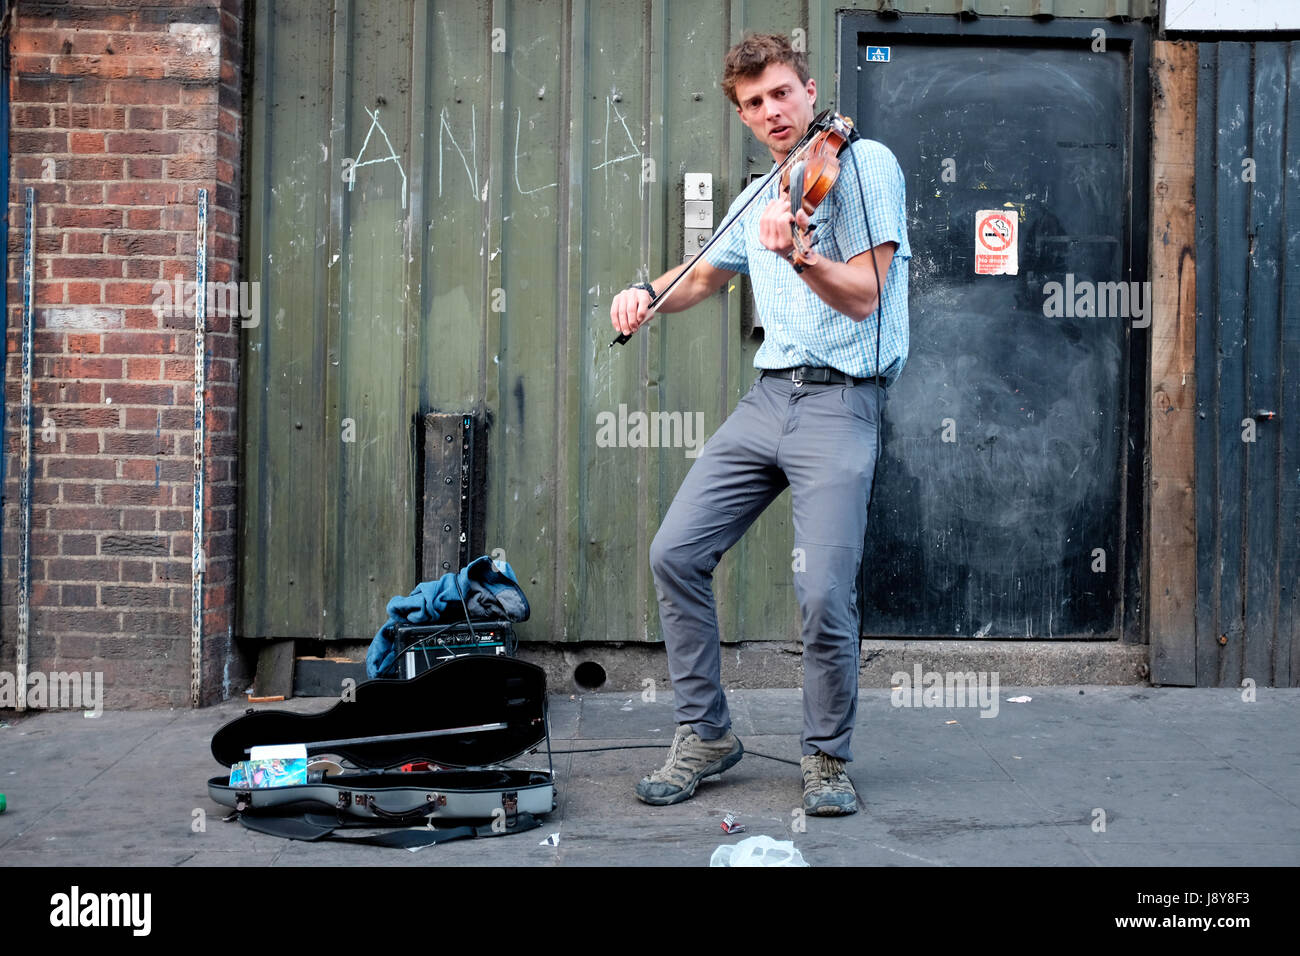 London Street Musician or Busker, playing Violin  on the streets of Camden Town, London. - Stock Image